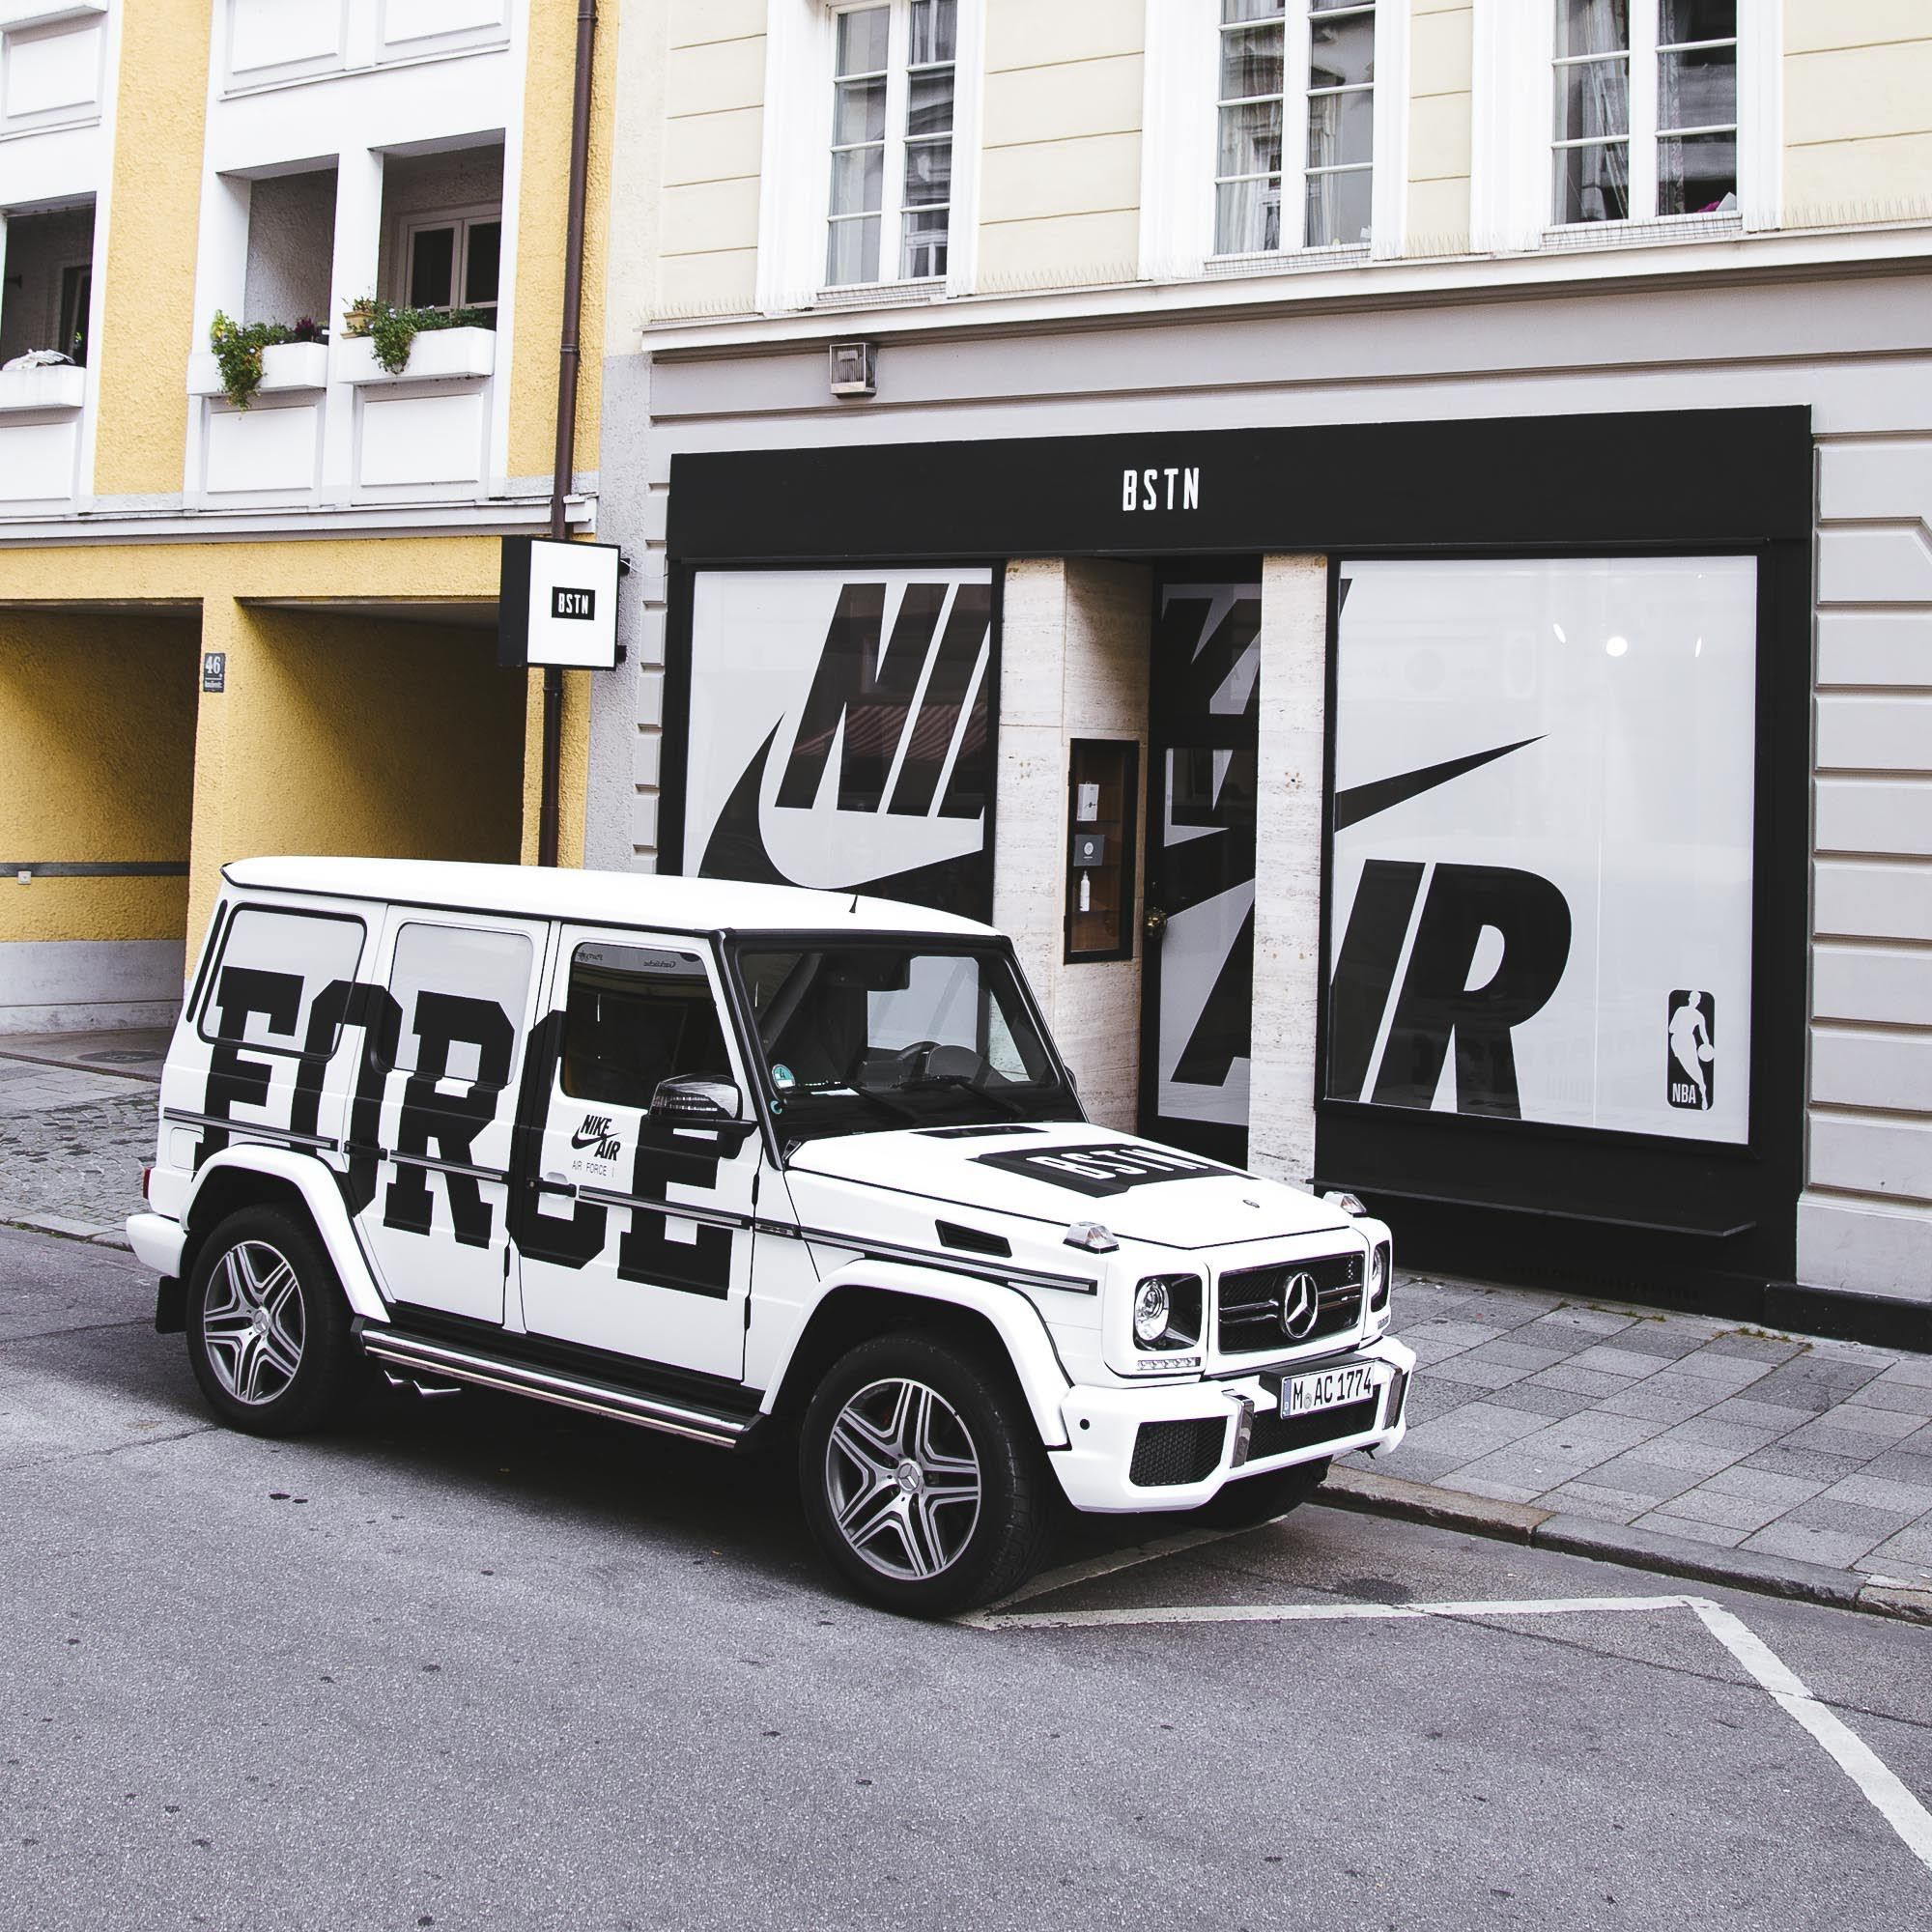 super popular d1b01 6c4cb BSTN Customized A Mercedes G63 AMG For The Launch Of The New Nike NBA  Uniforms And Air Force 1s